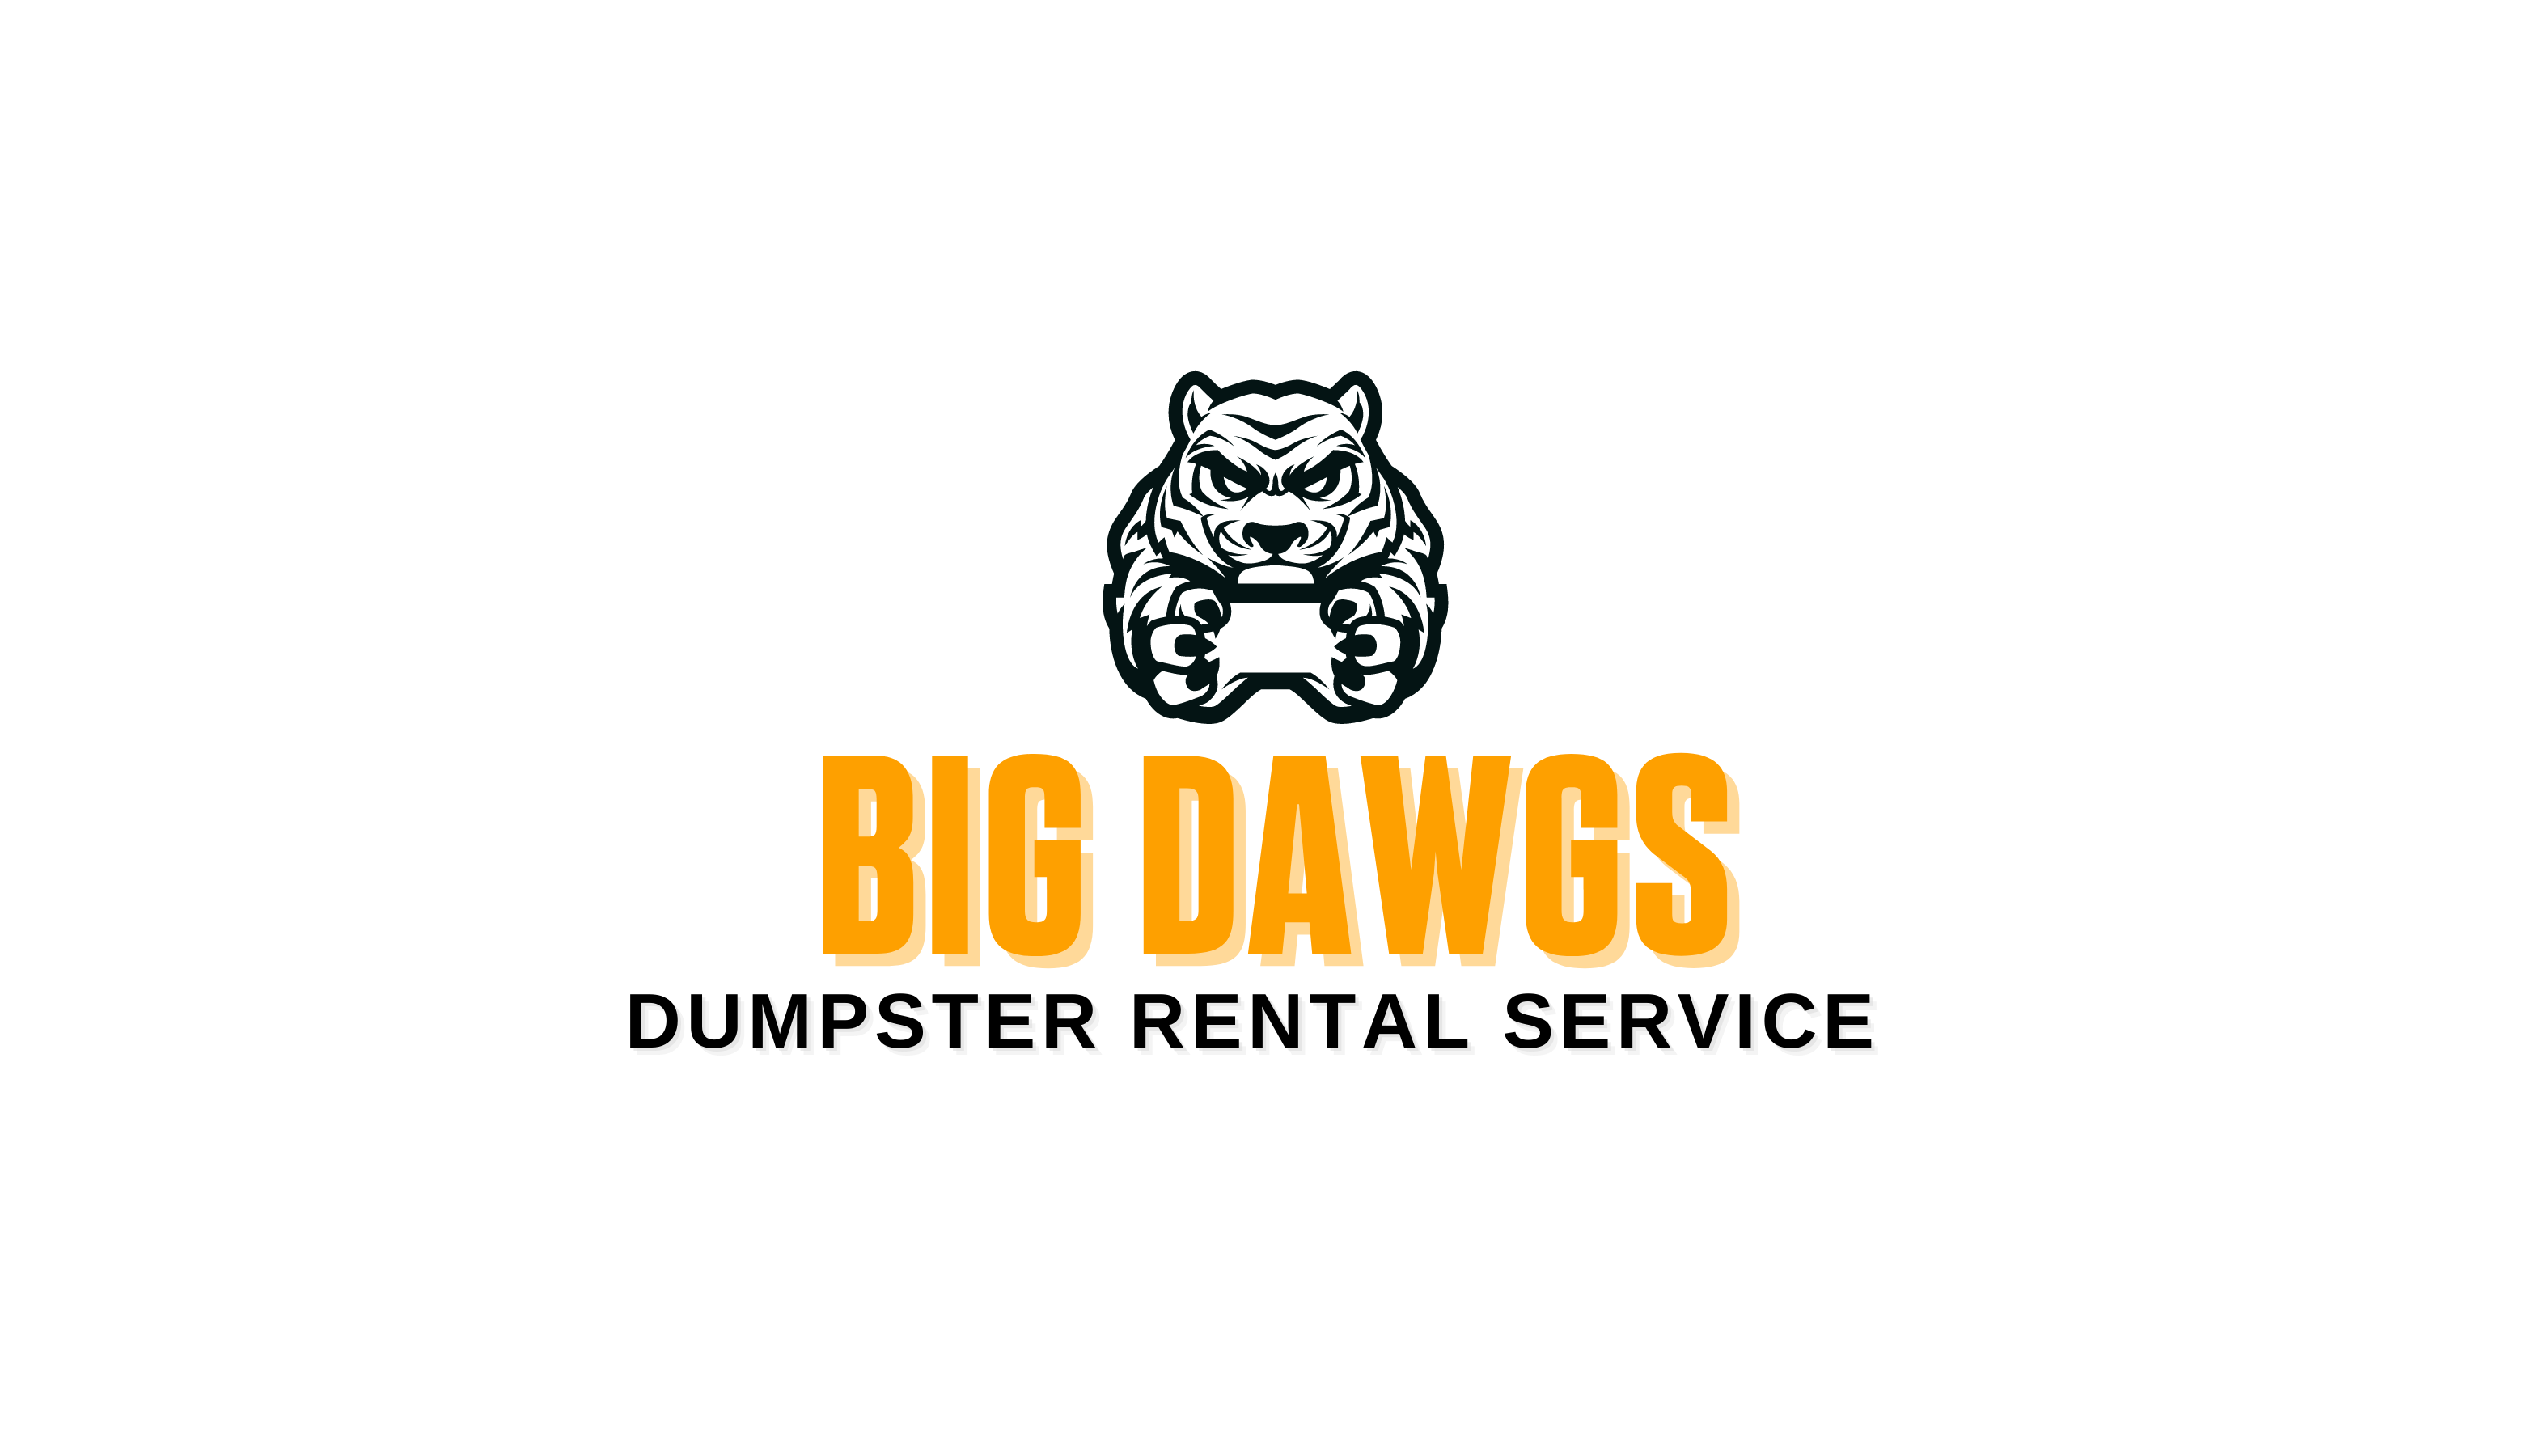 Big Dawgs Dumpster Rental Hauling & Junk Removal Service Icon